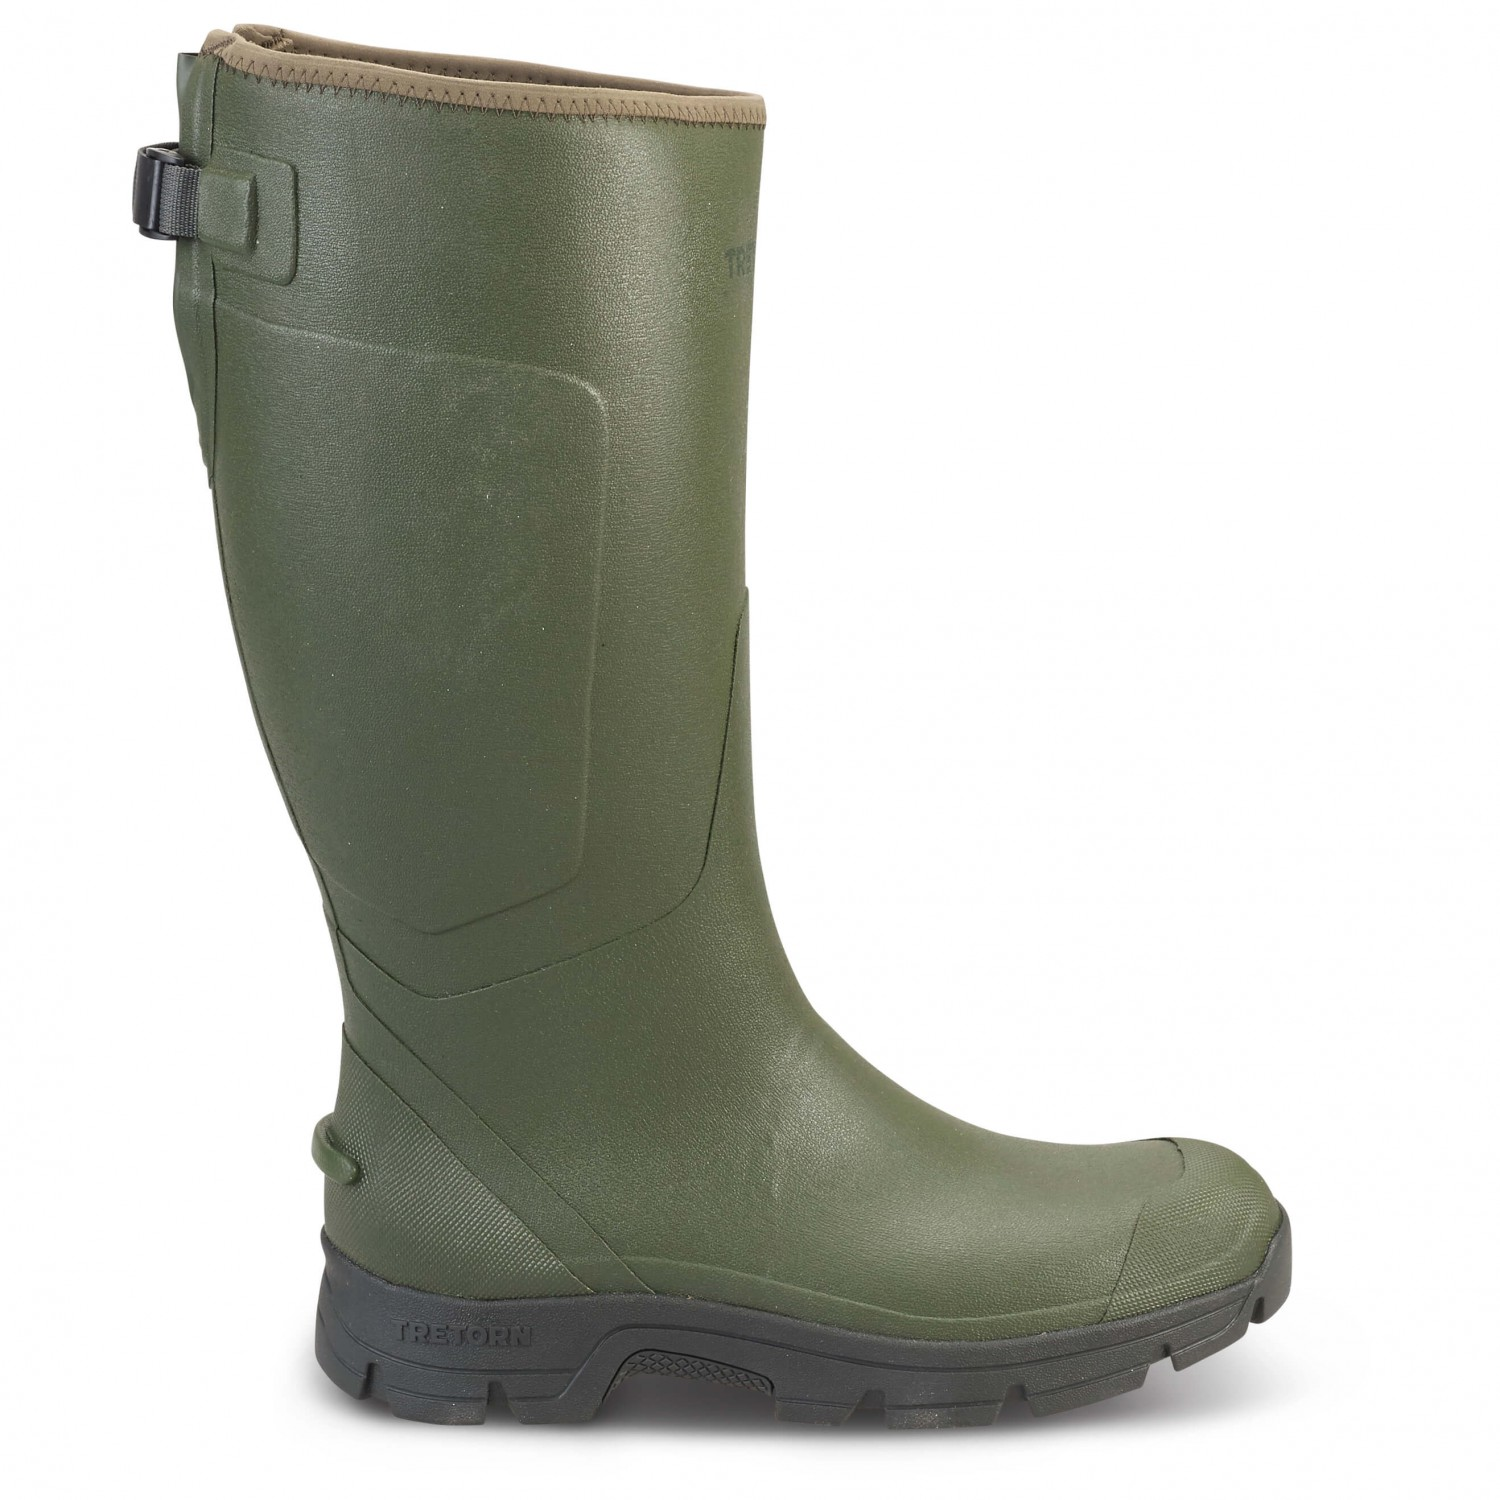 Tretorn Tornevik Wellington Boots Free Uk Delivery